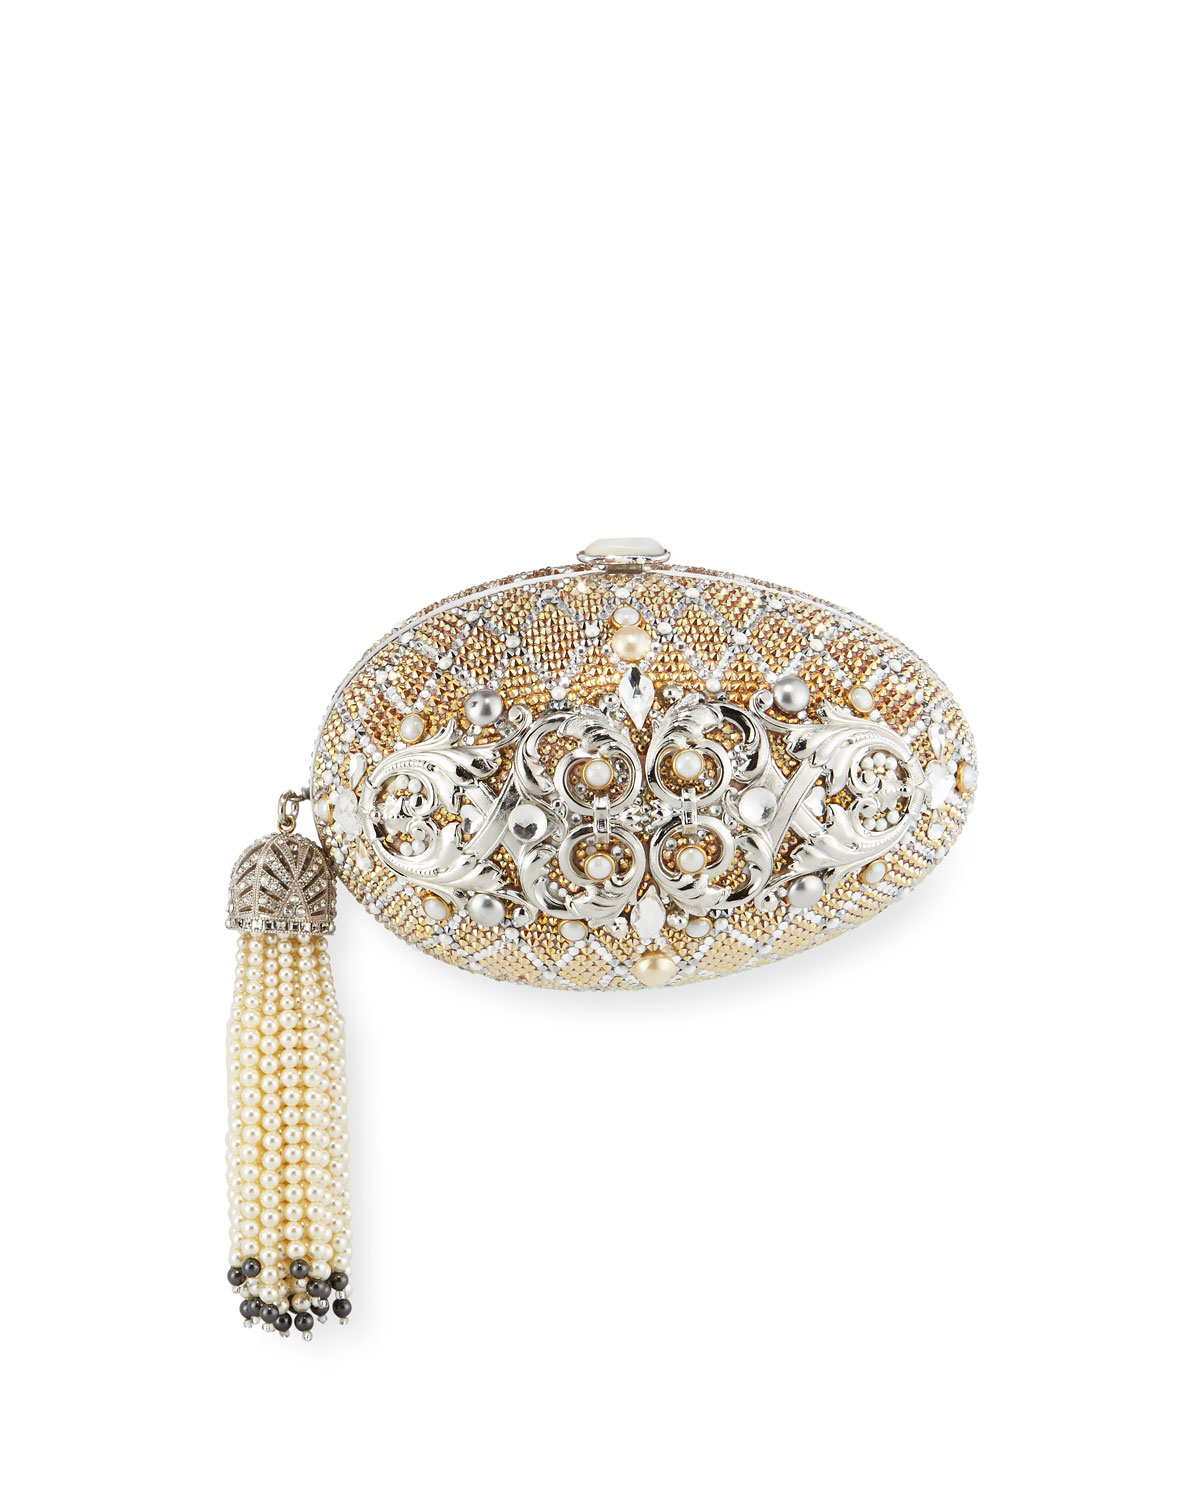 Crystal Egg Clutch Bag